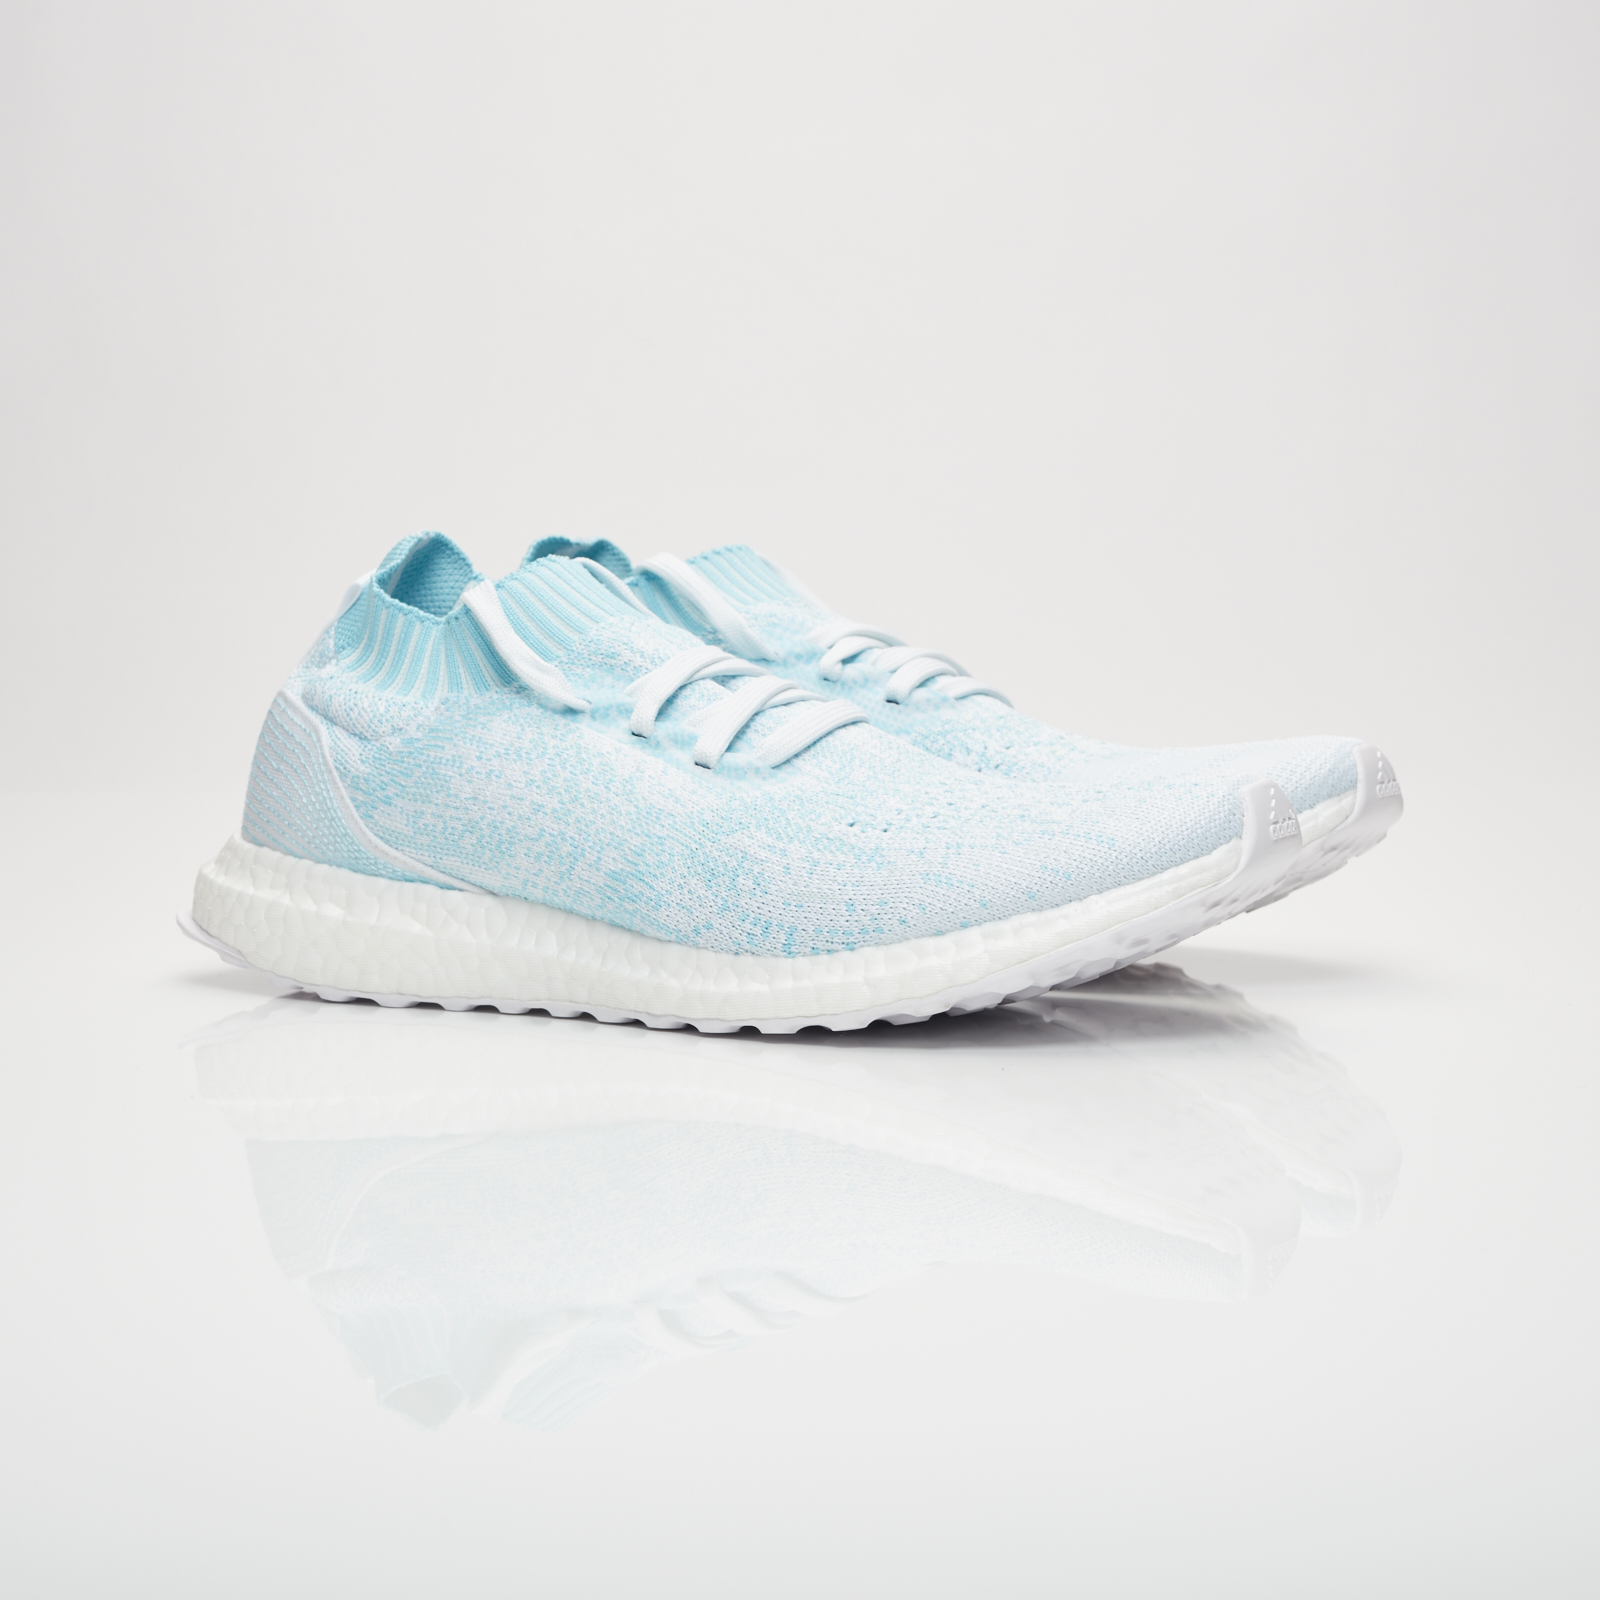 official photos 151ab 017f9 adidas UltraBOOST Uncaged Parley - Cp9686 - Sneakersnstuff ...